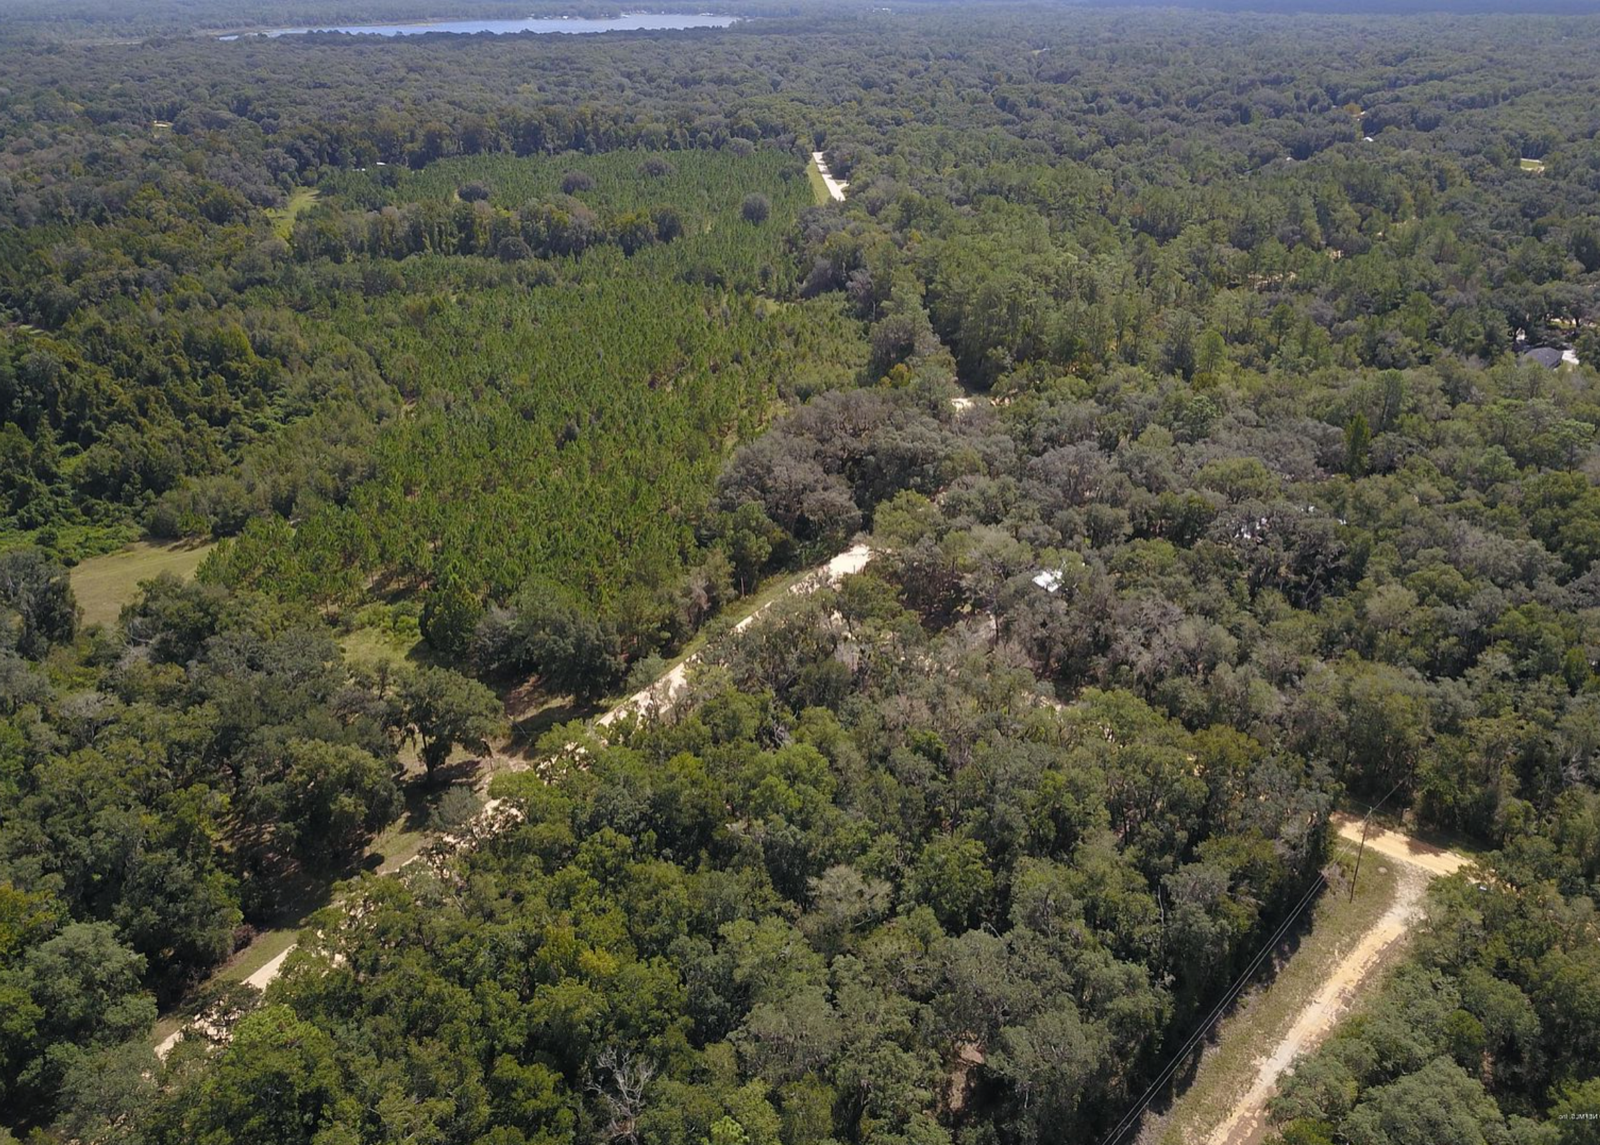 VACANT LAND FOR SALE 1/10 ACRE FLORIDA LOT NEAR POWER NEAR LAKE ROAD ACCESS  - $2,725.00